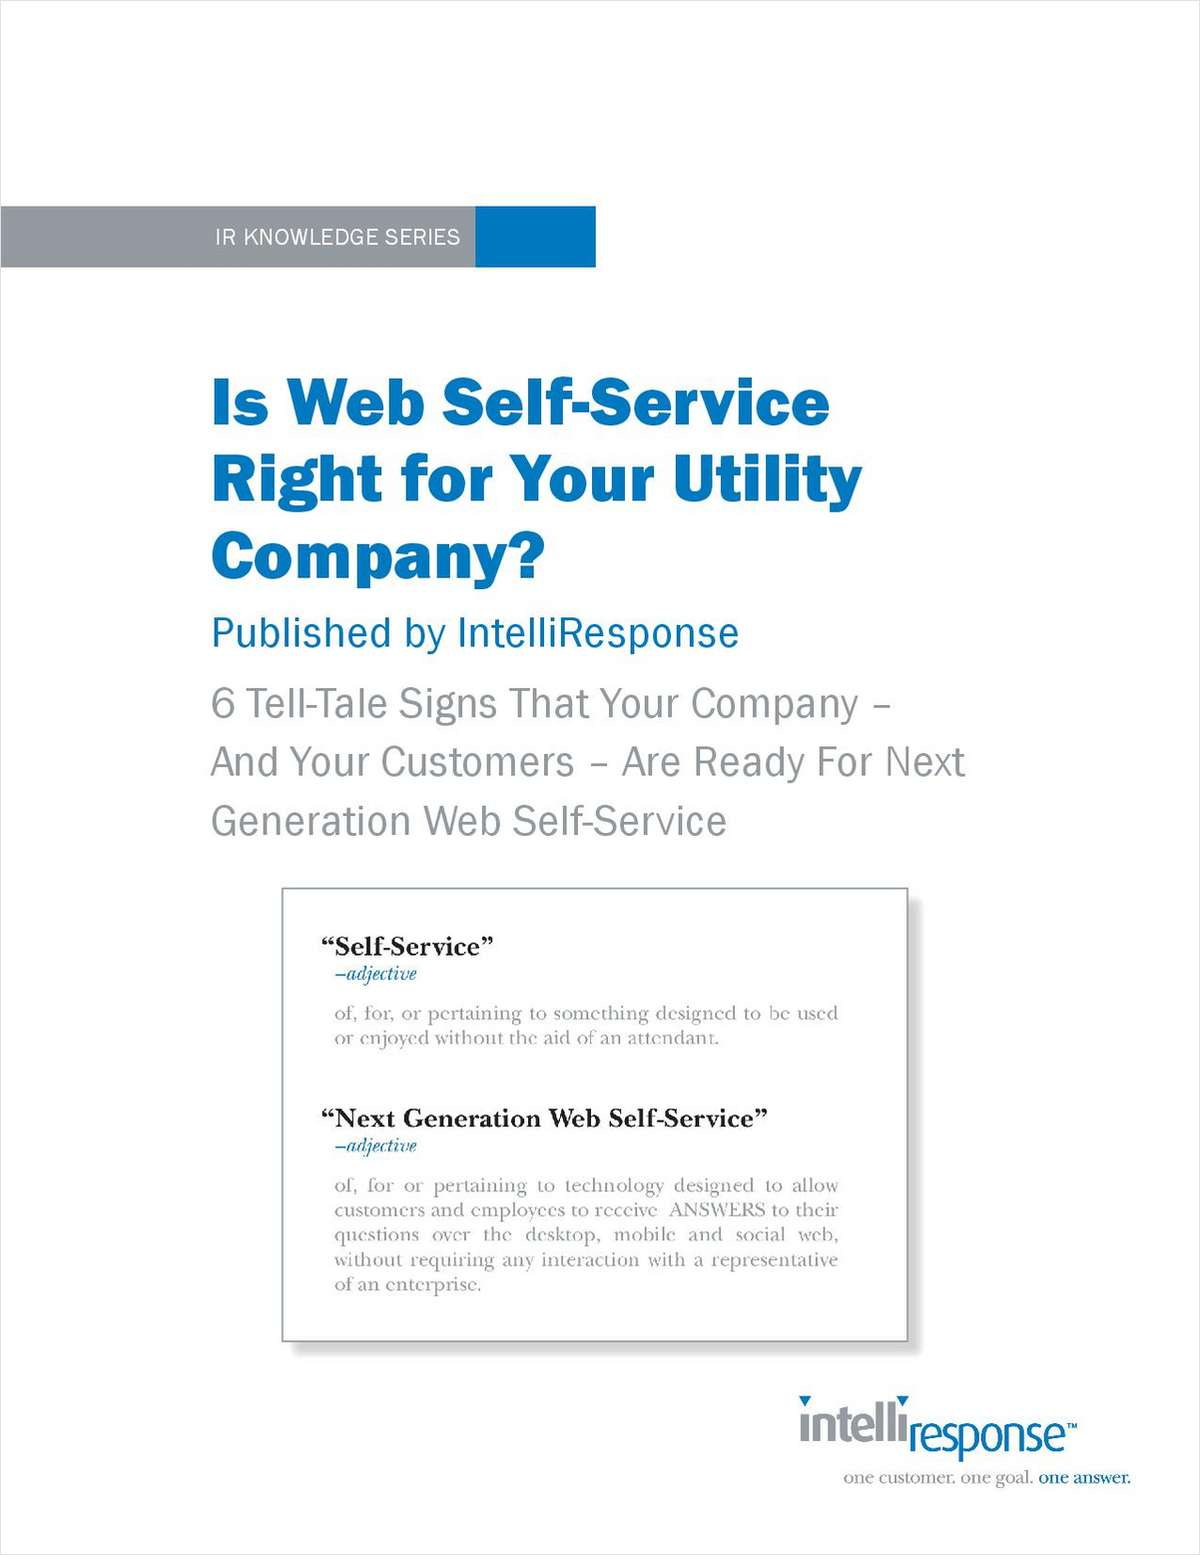 Is Web Self-Service Right for Your Utility Company?